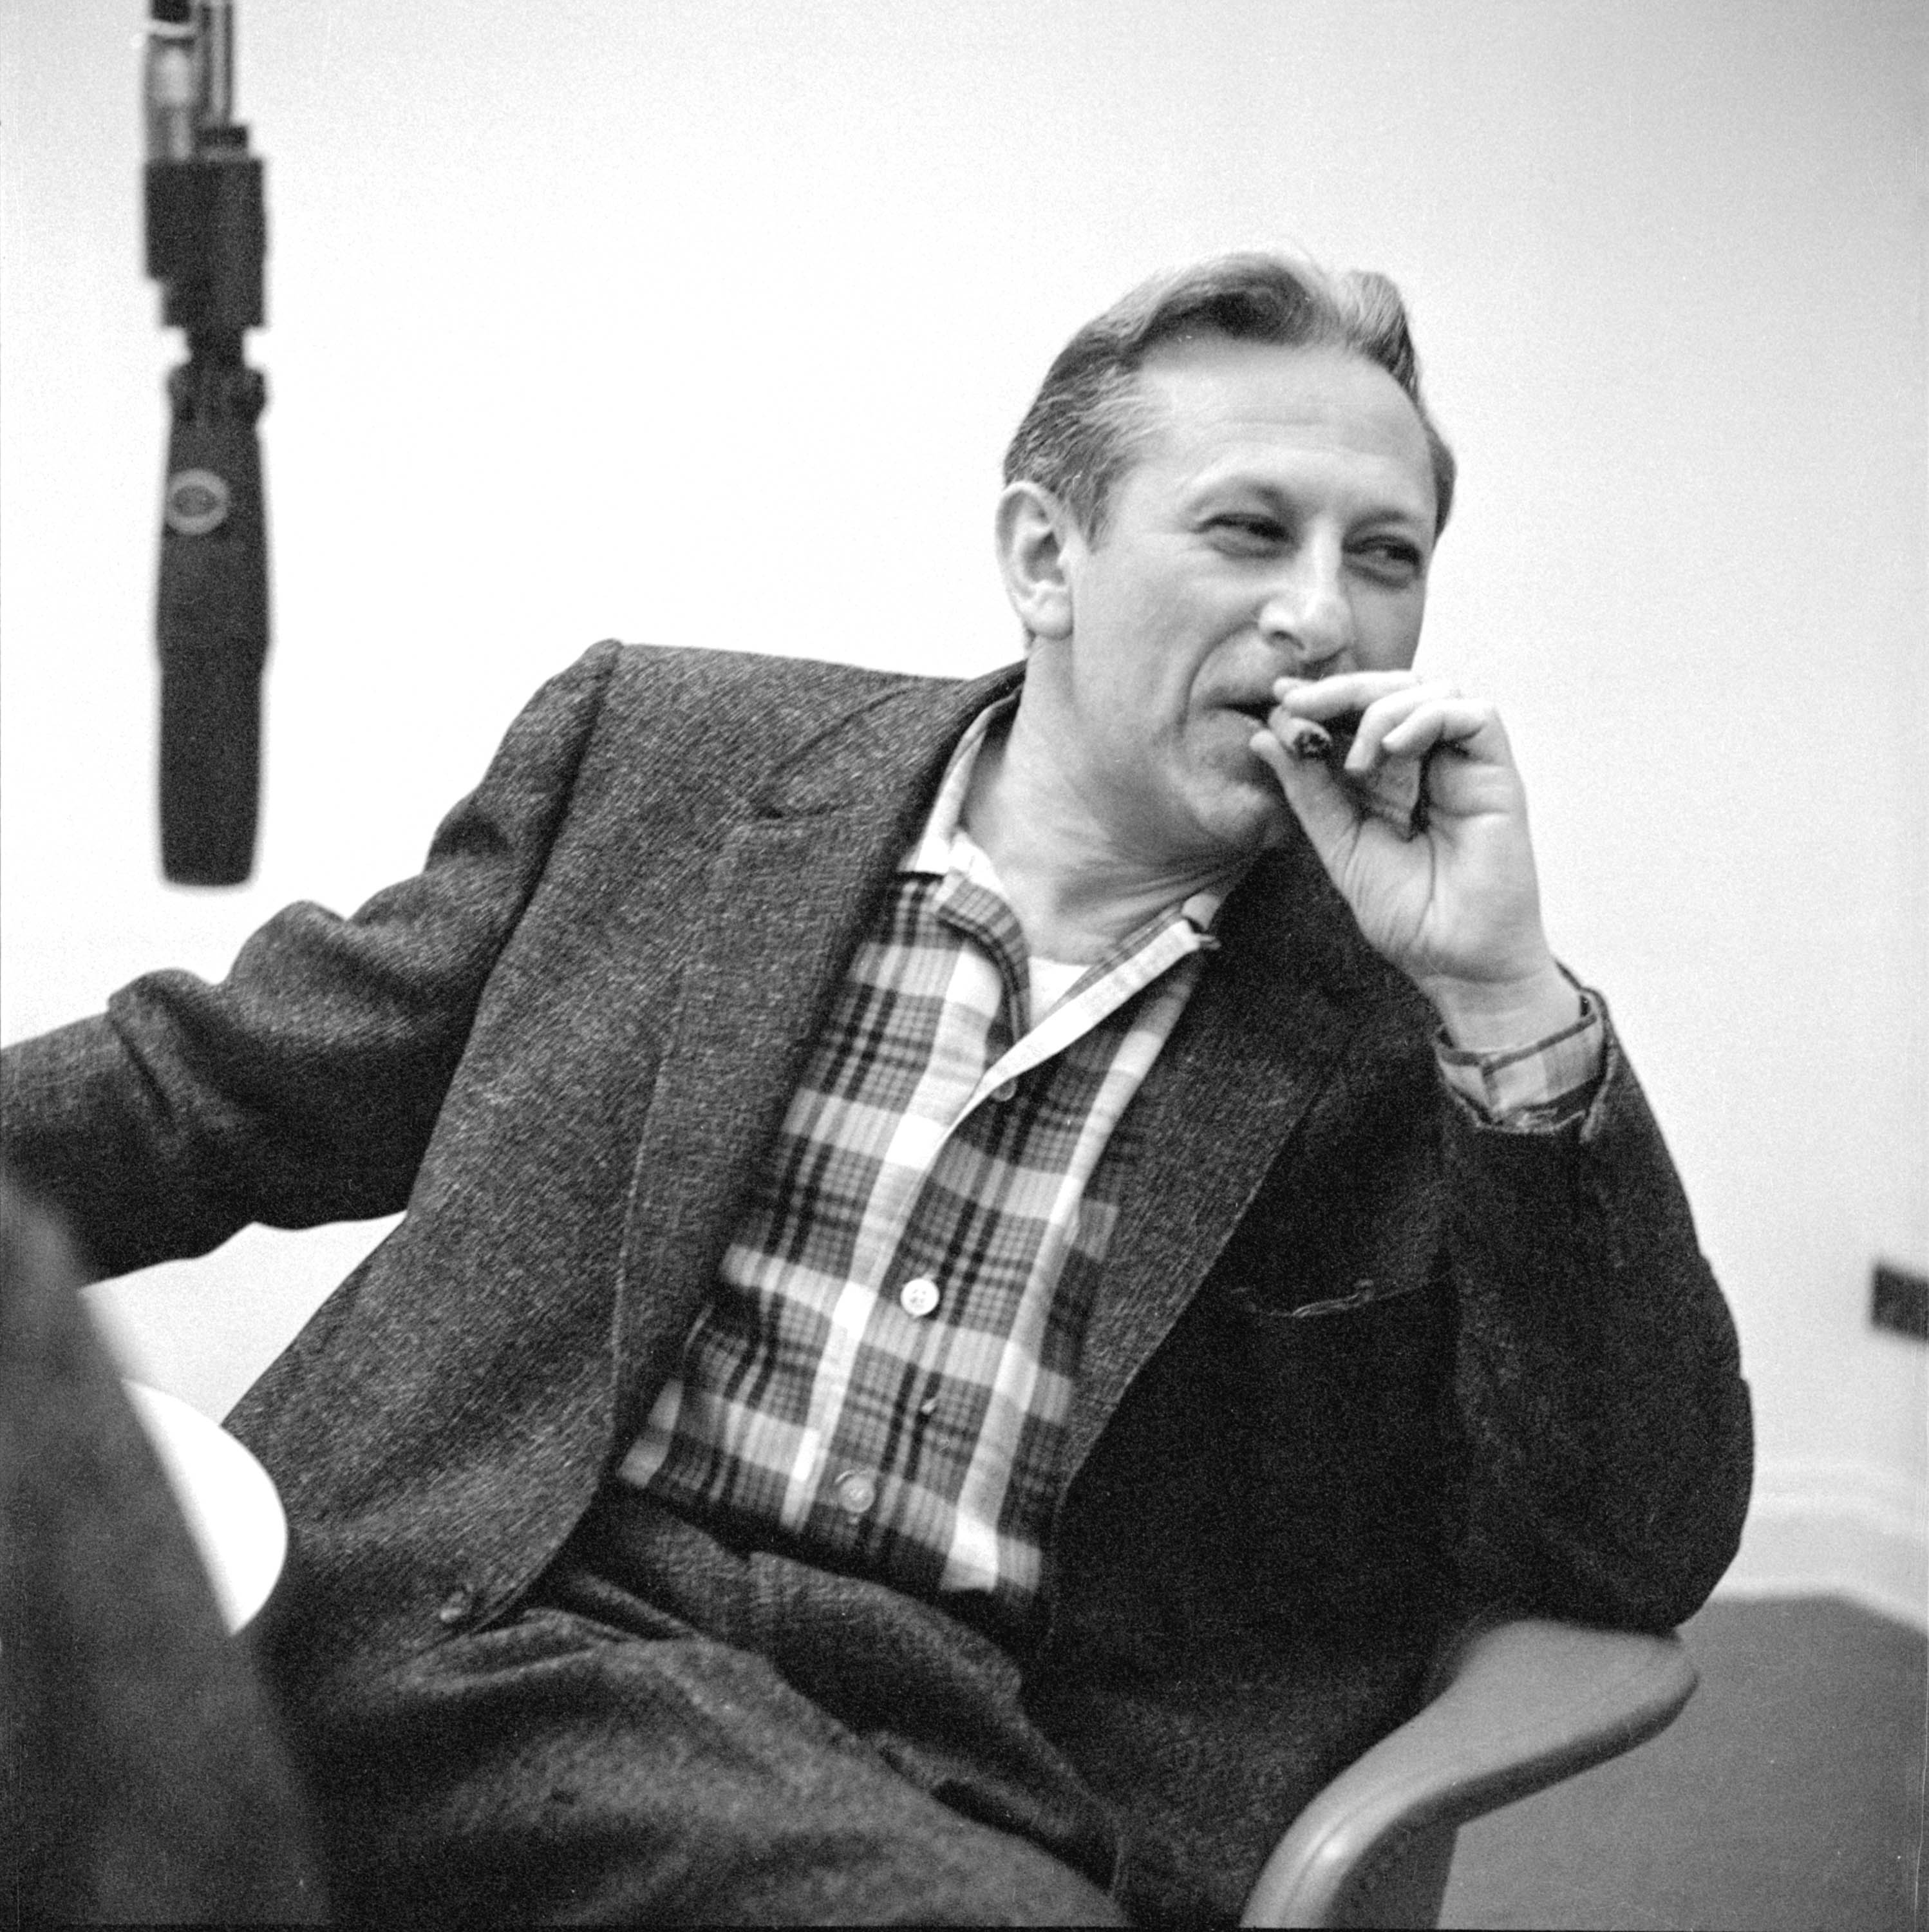 Studs Terkel smoking a cigar in a recording studio, Chicago, Illinois, circa 1960. <em>Chicago History Museum, ICHi-065442, Stephen Deutch, photographer</em>